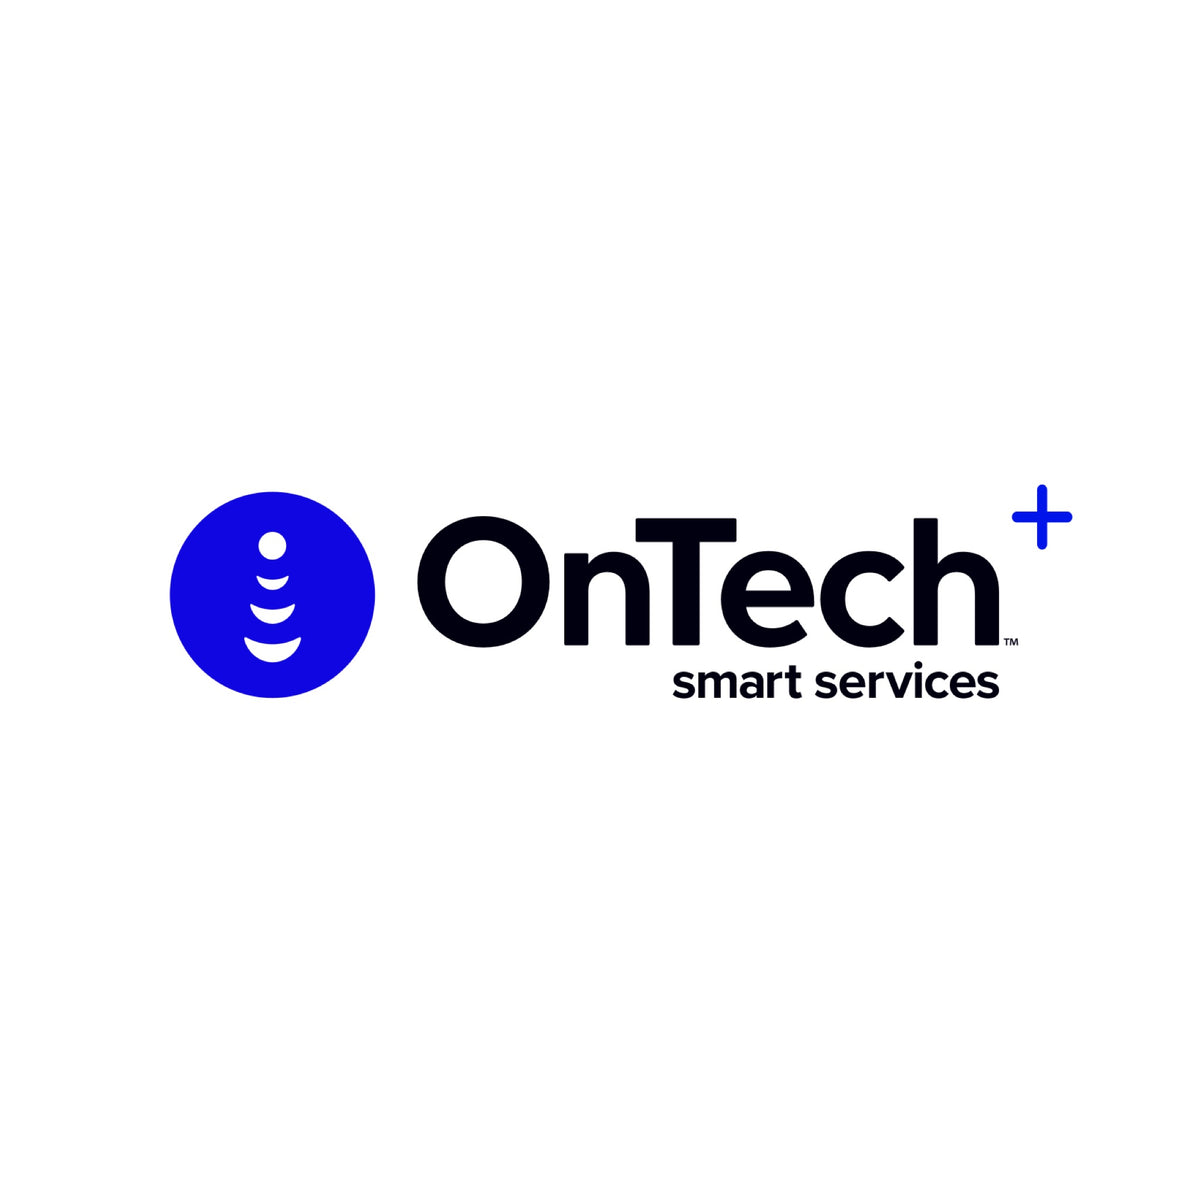 OnTech+ Membership Unlimited Smart Support & Service- $199.99 reg. price, $99.99 redeemed service applied